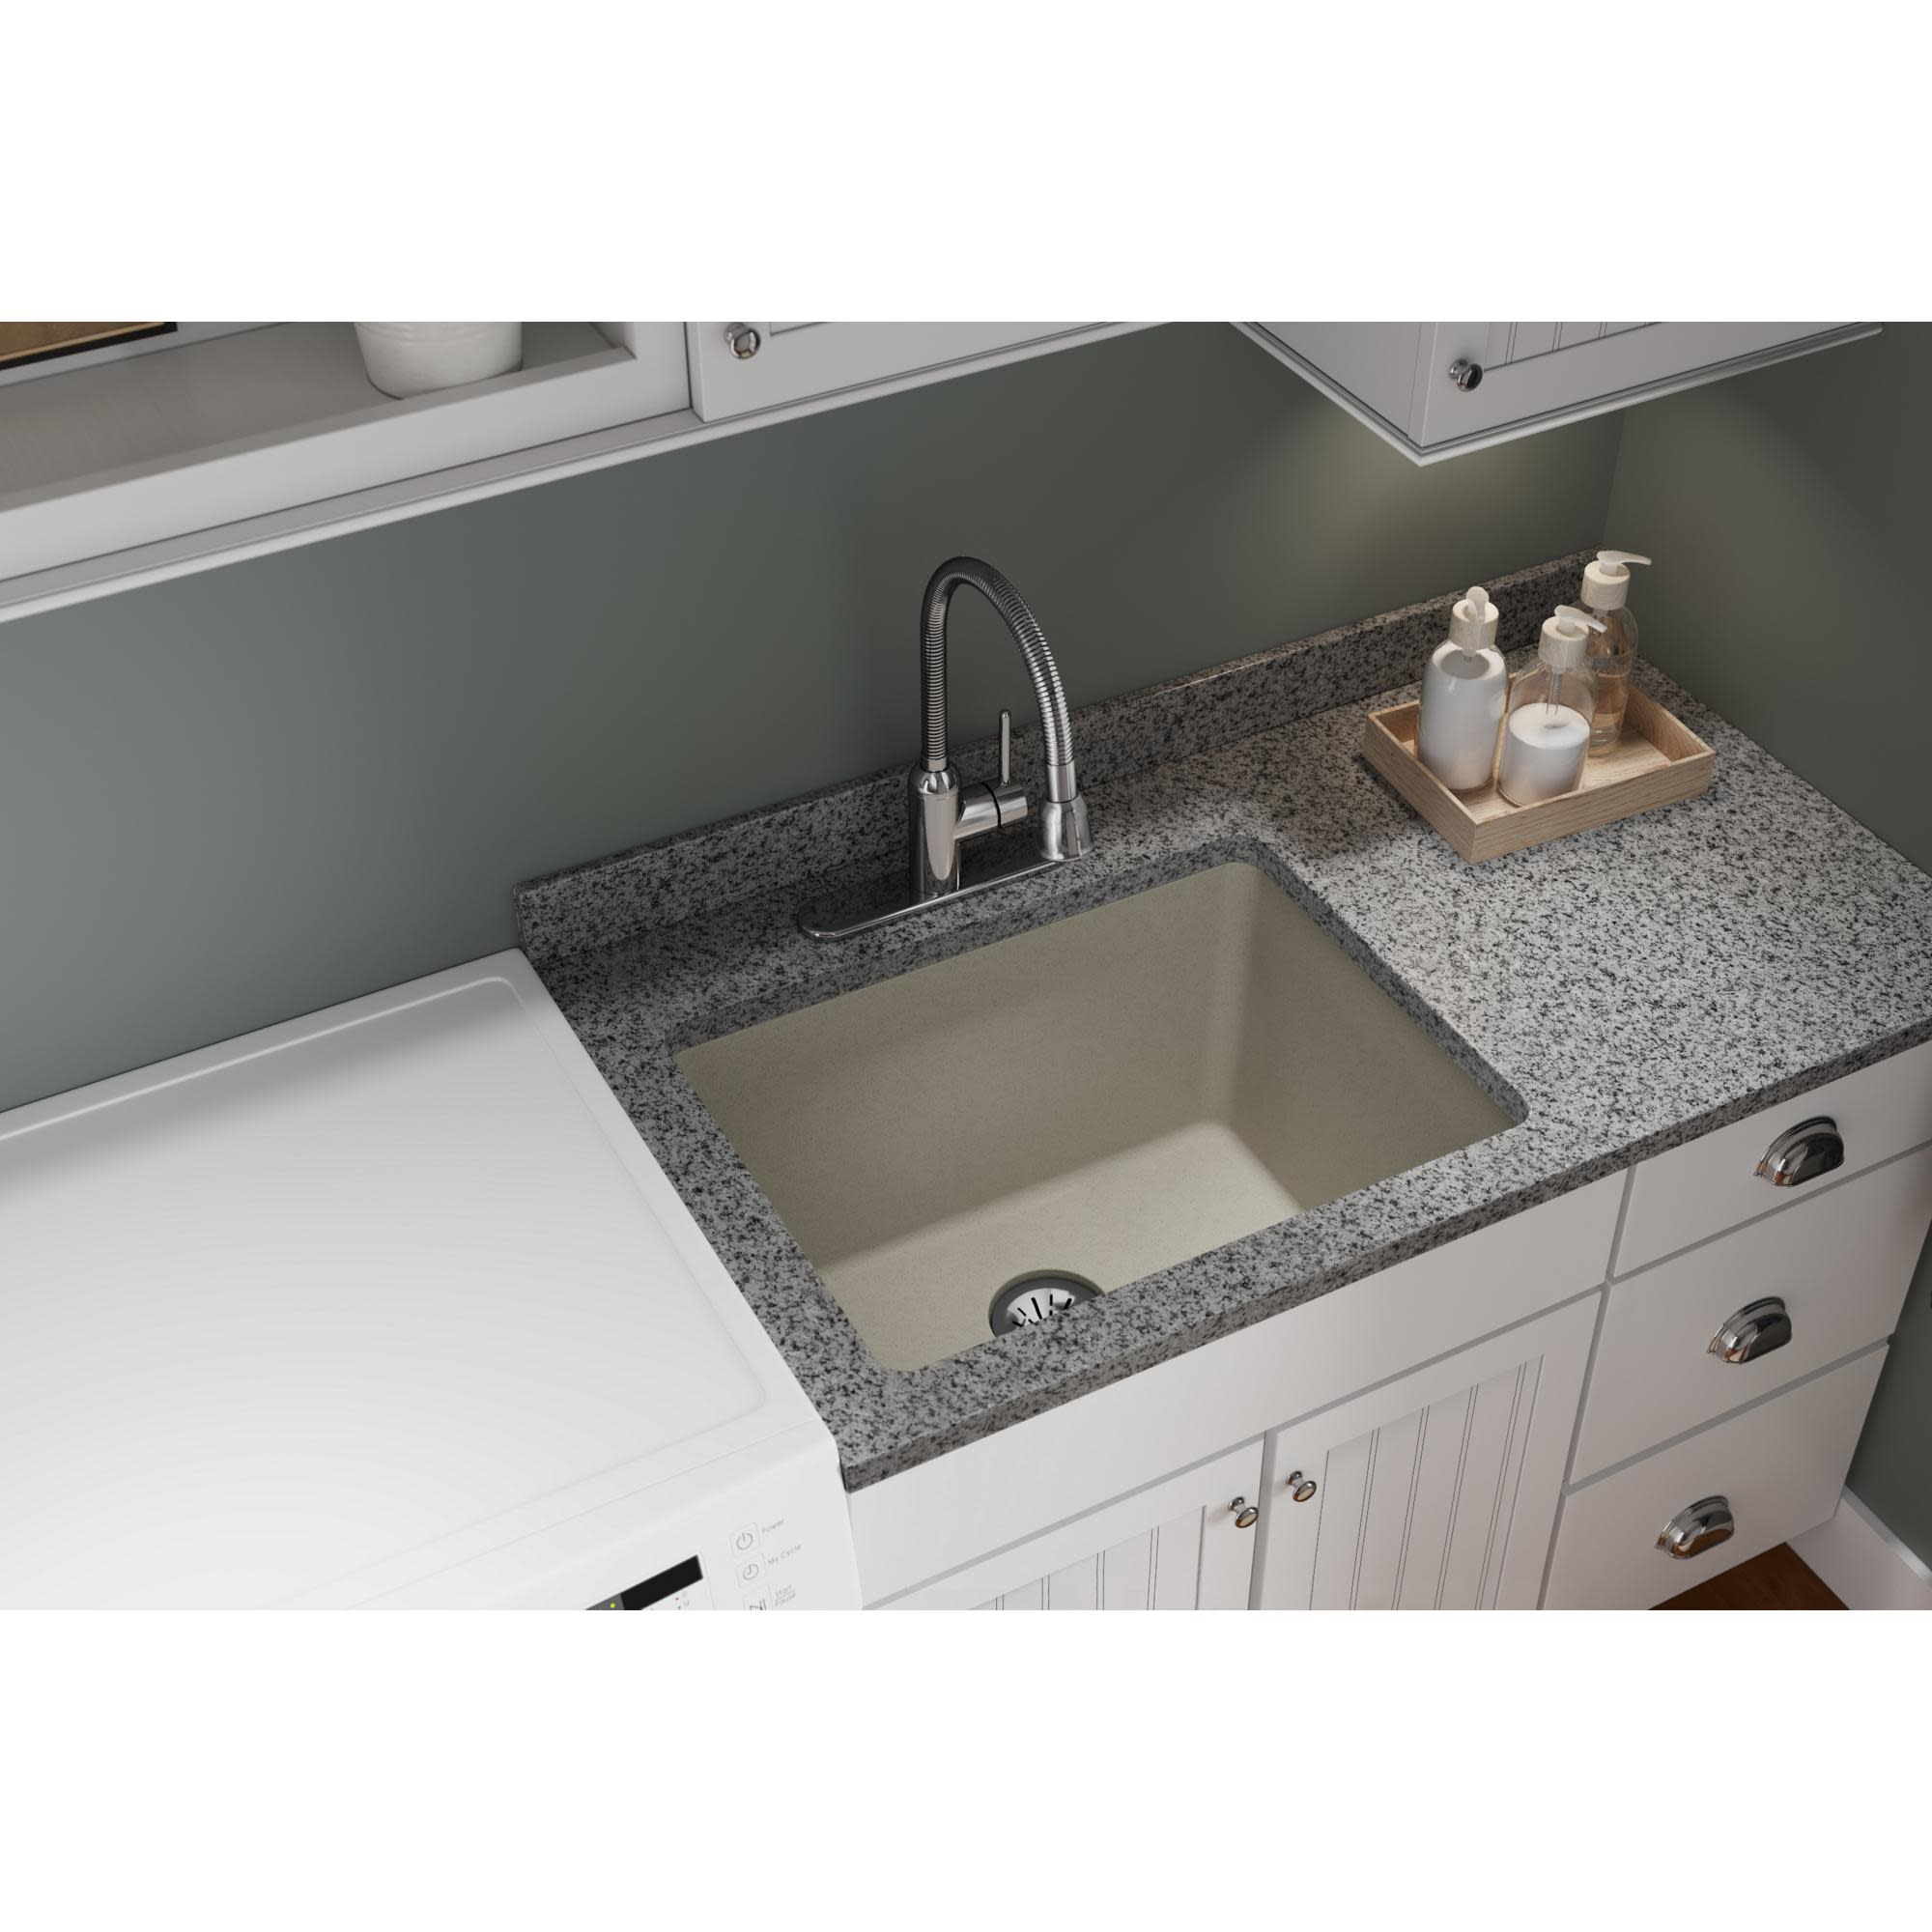 amazing marble countertop sink design and modern faucet.htm elkay elgu251912pd 25  undermount laundry sink qualitybath com  undermount laundry sink